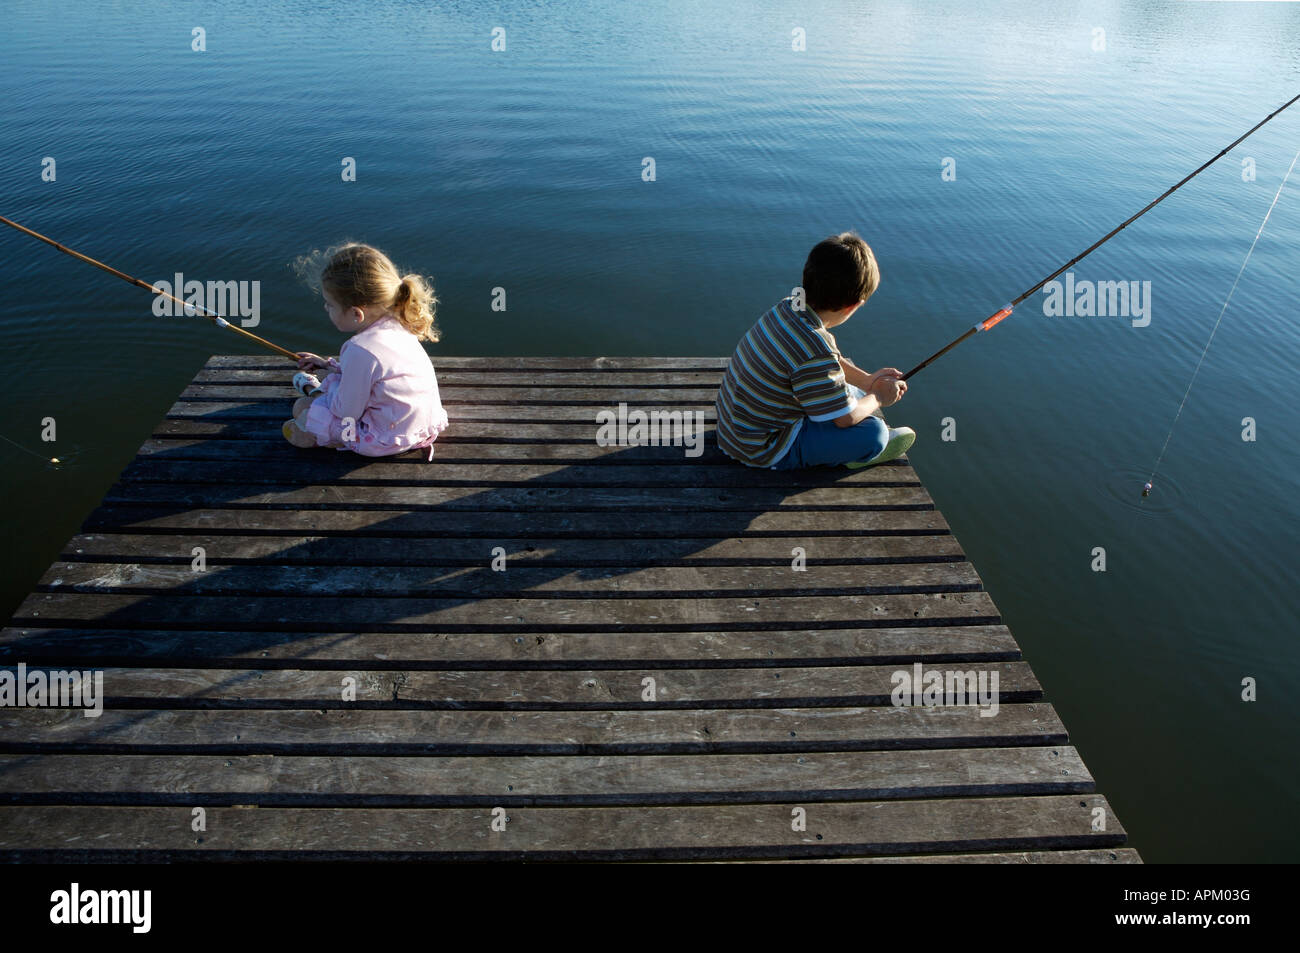 Brothers fishing - Stock Image